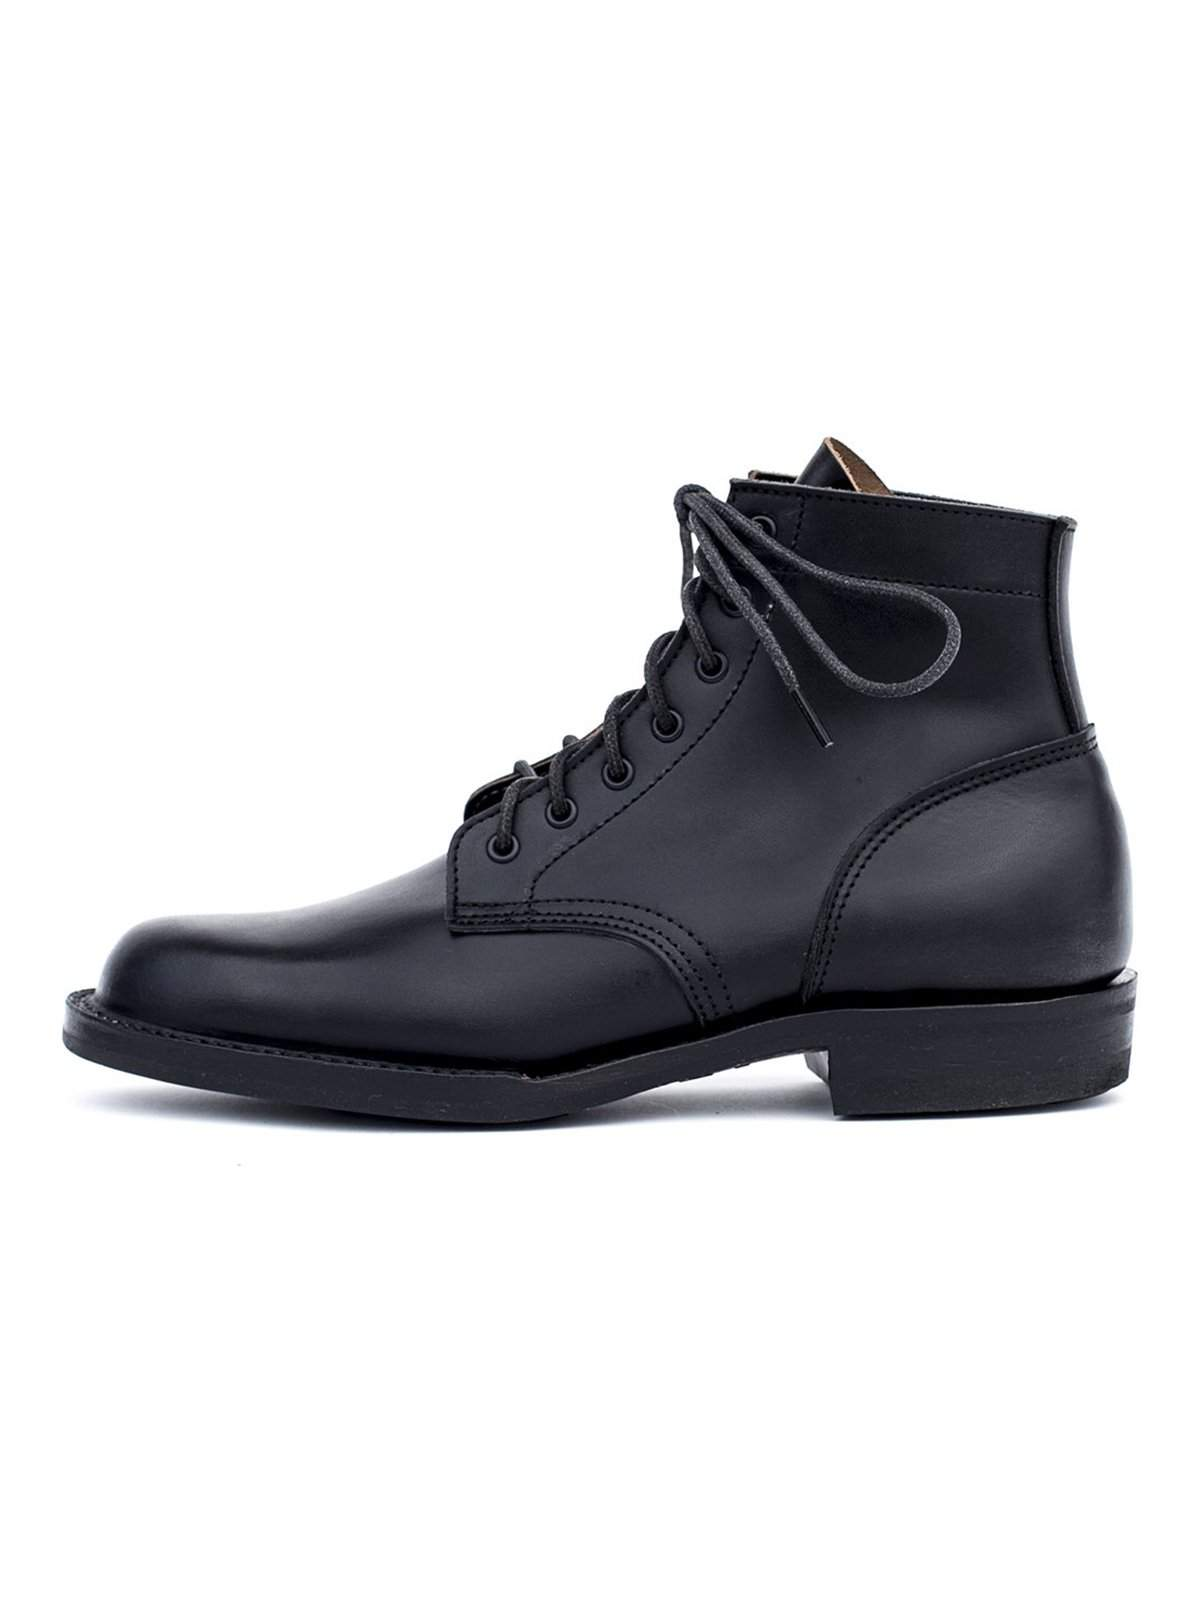 Truman Boot Co  Nero Blacked Out - MORE by Morello Indonesia